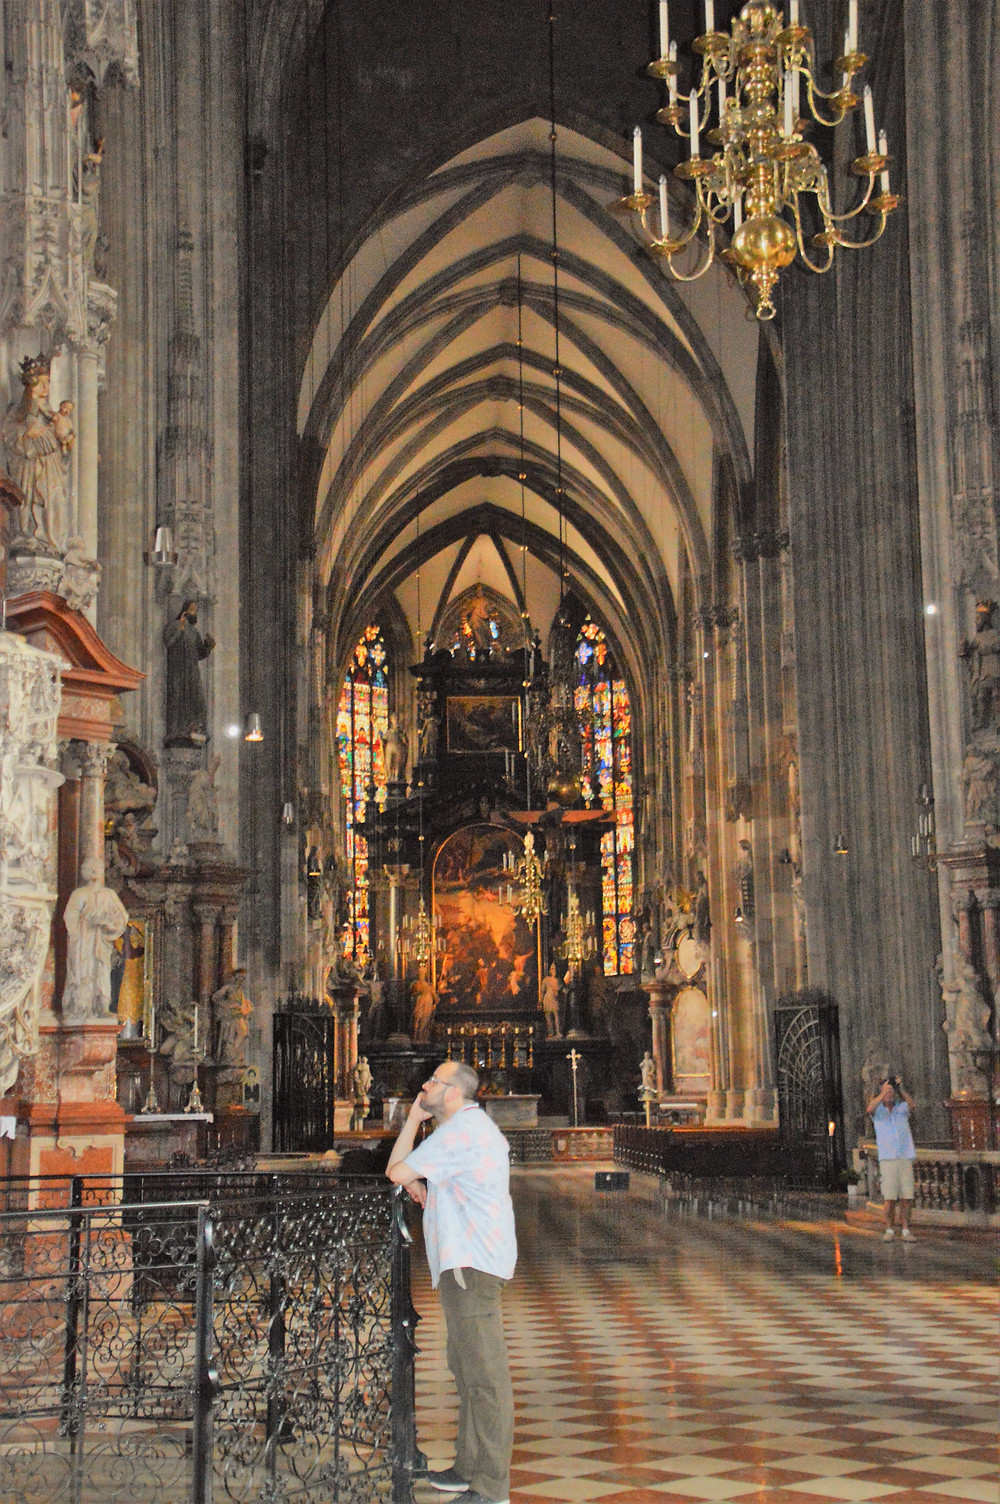 The immense nave of St Stephen's Cathedral in Vienna